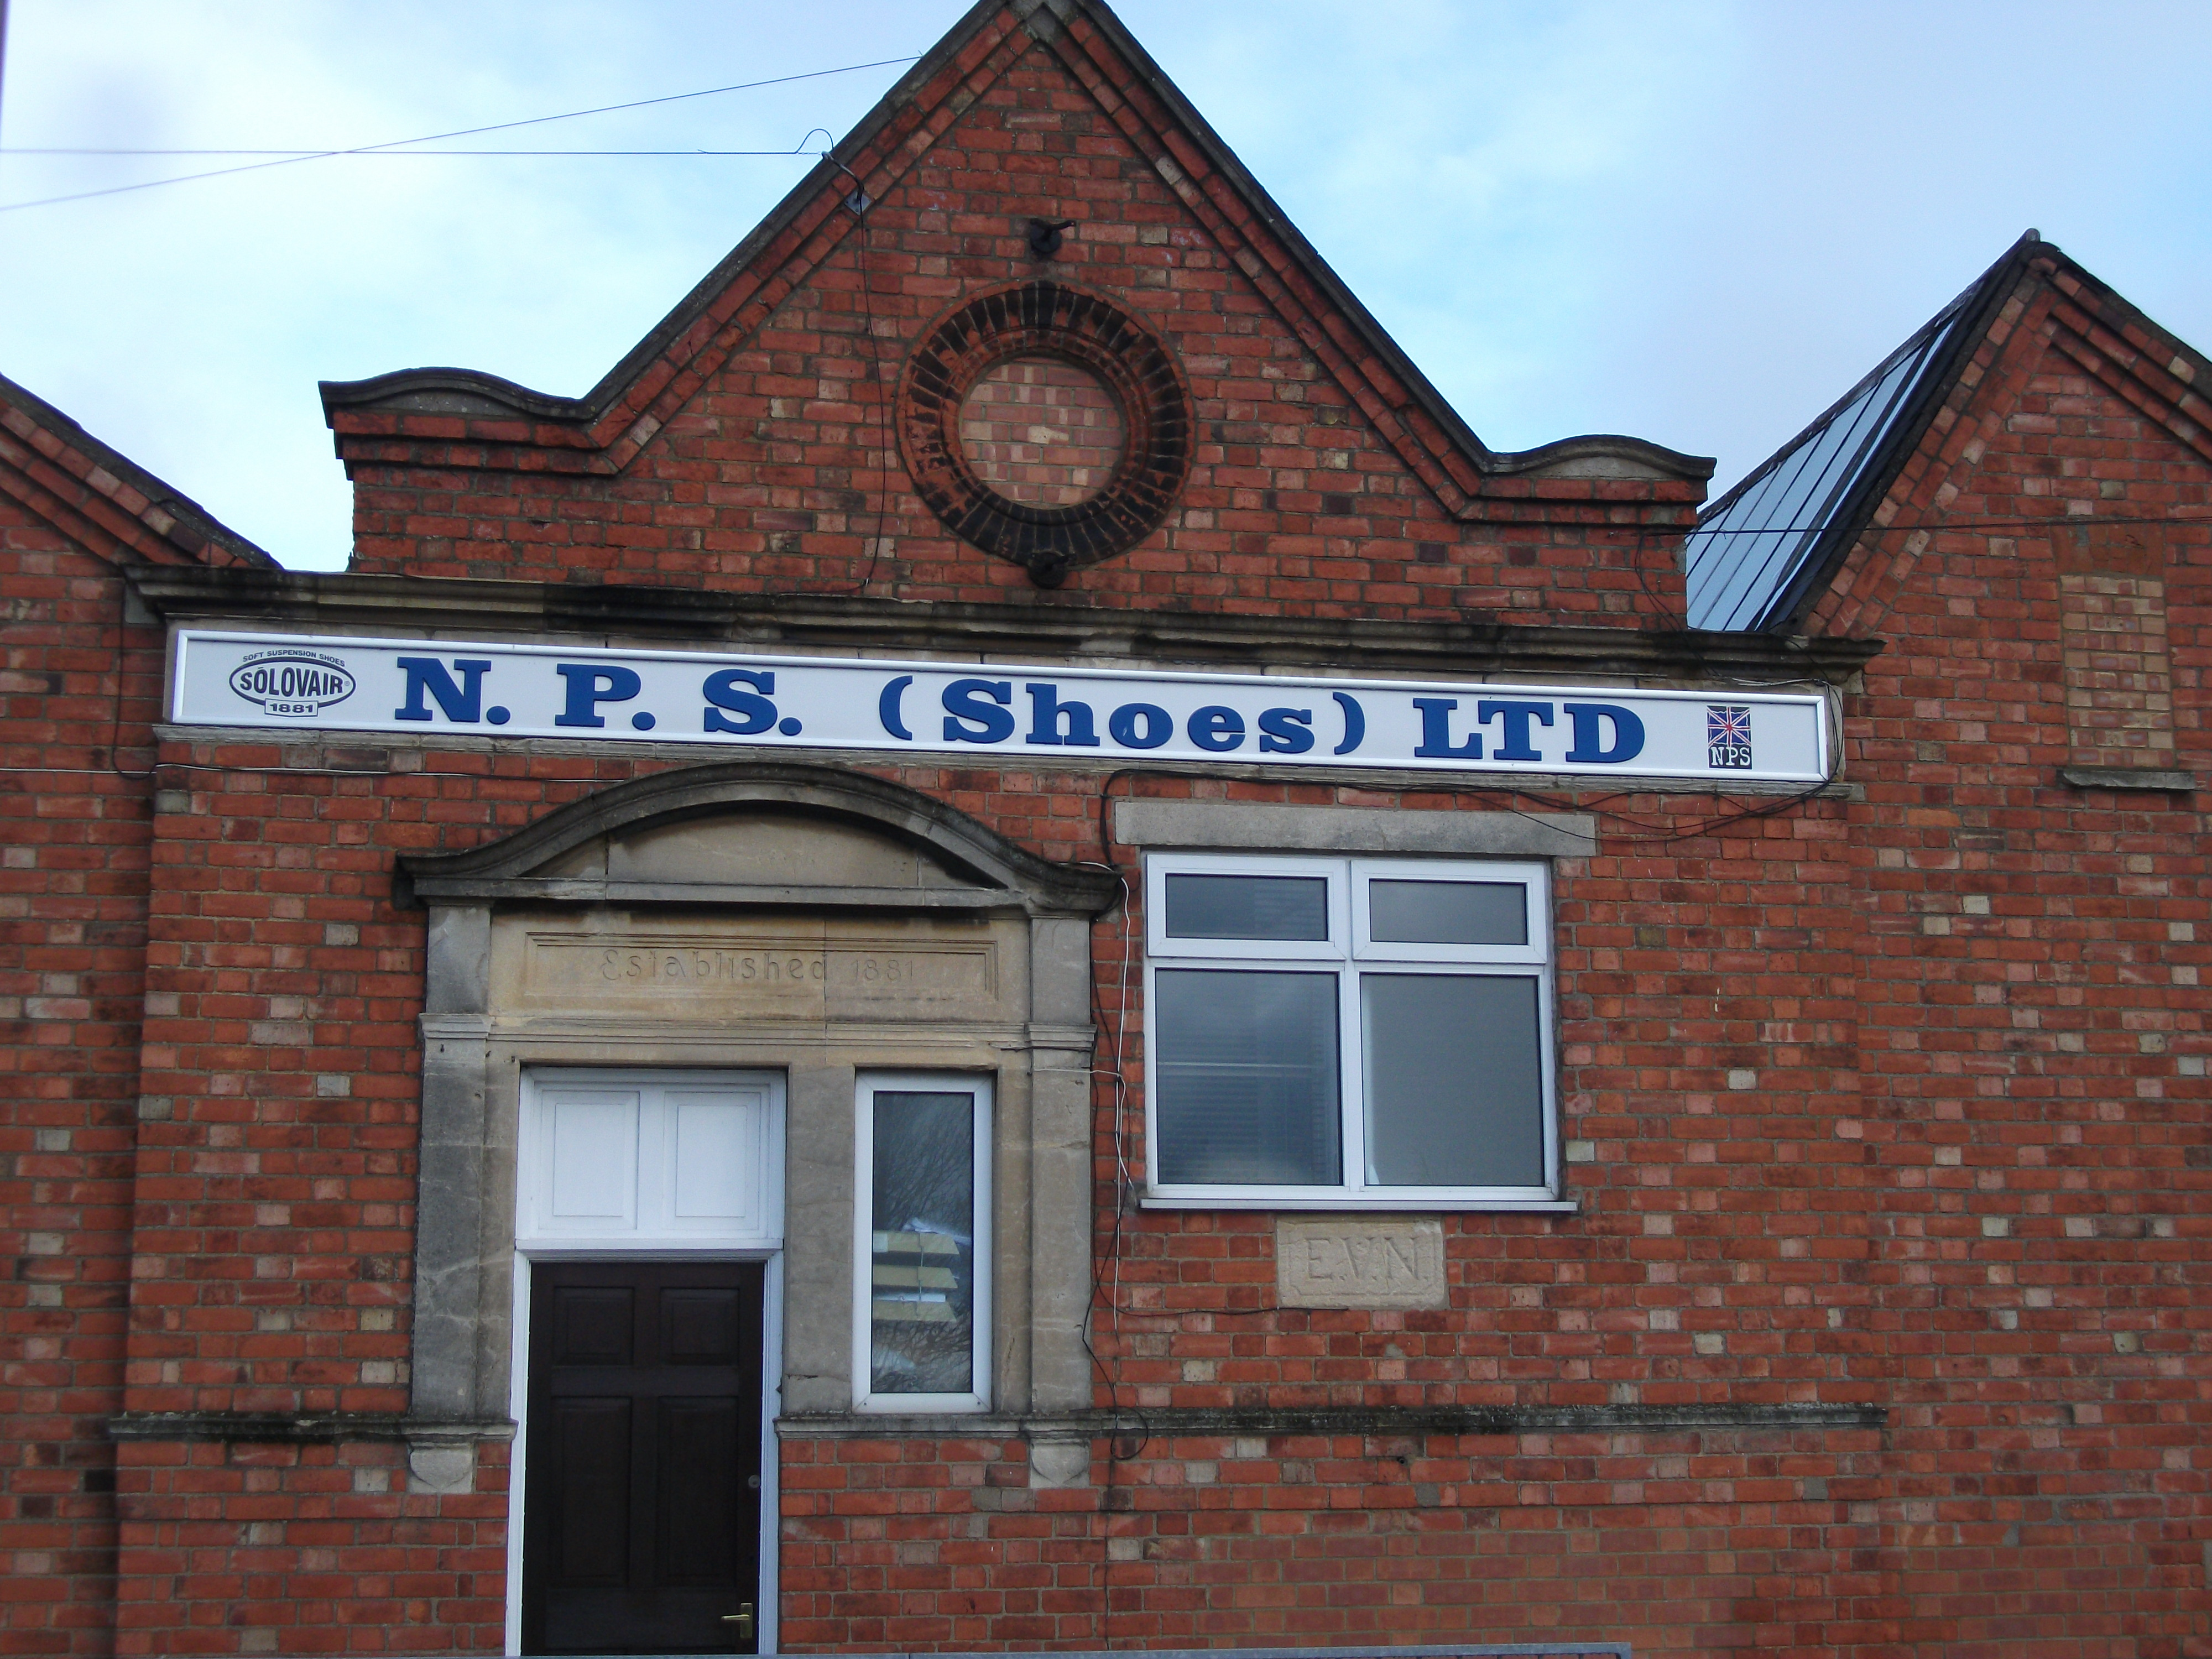 northamptonshire productive society ltd